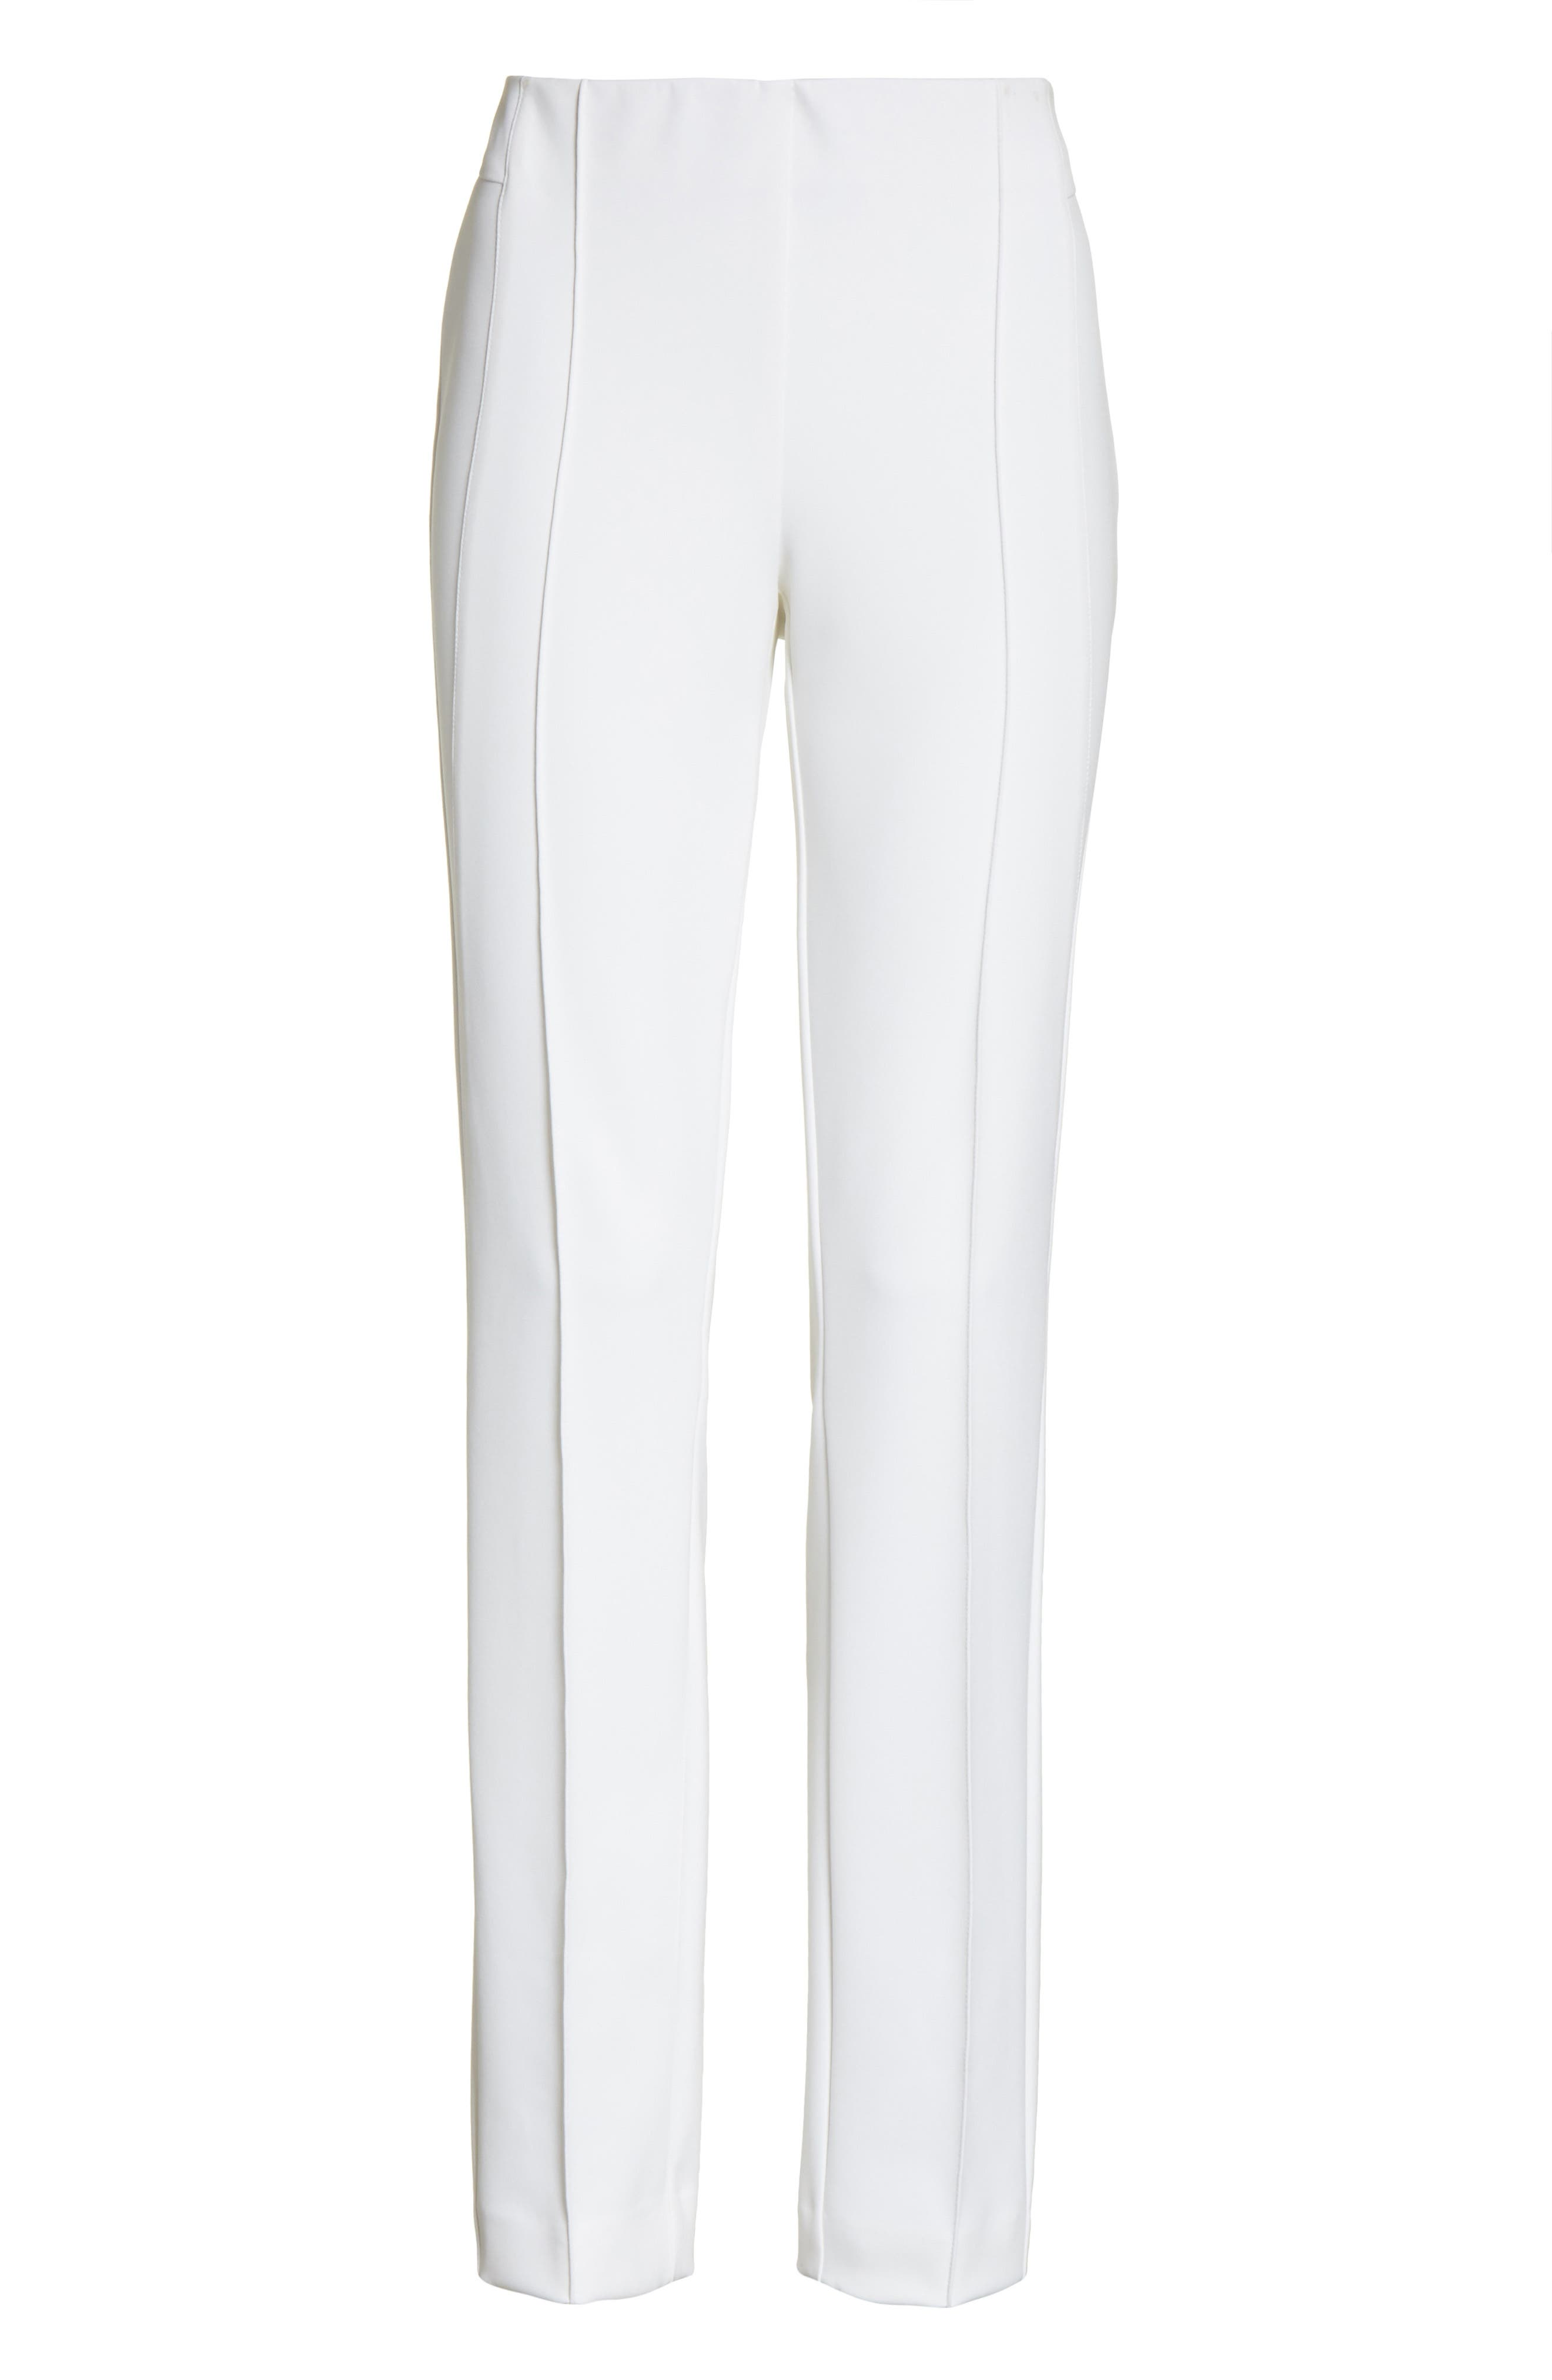 'Gramercy' Acclaimed Stretch Pants,                             Alternate thumbnail 7, color,                             WHITE